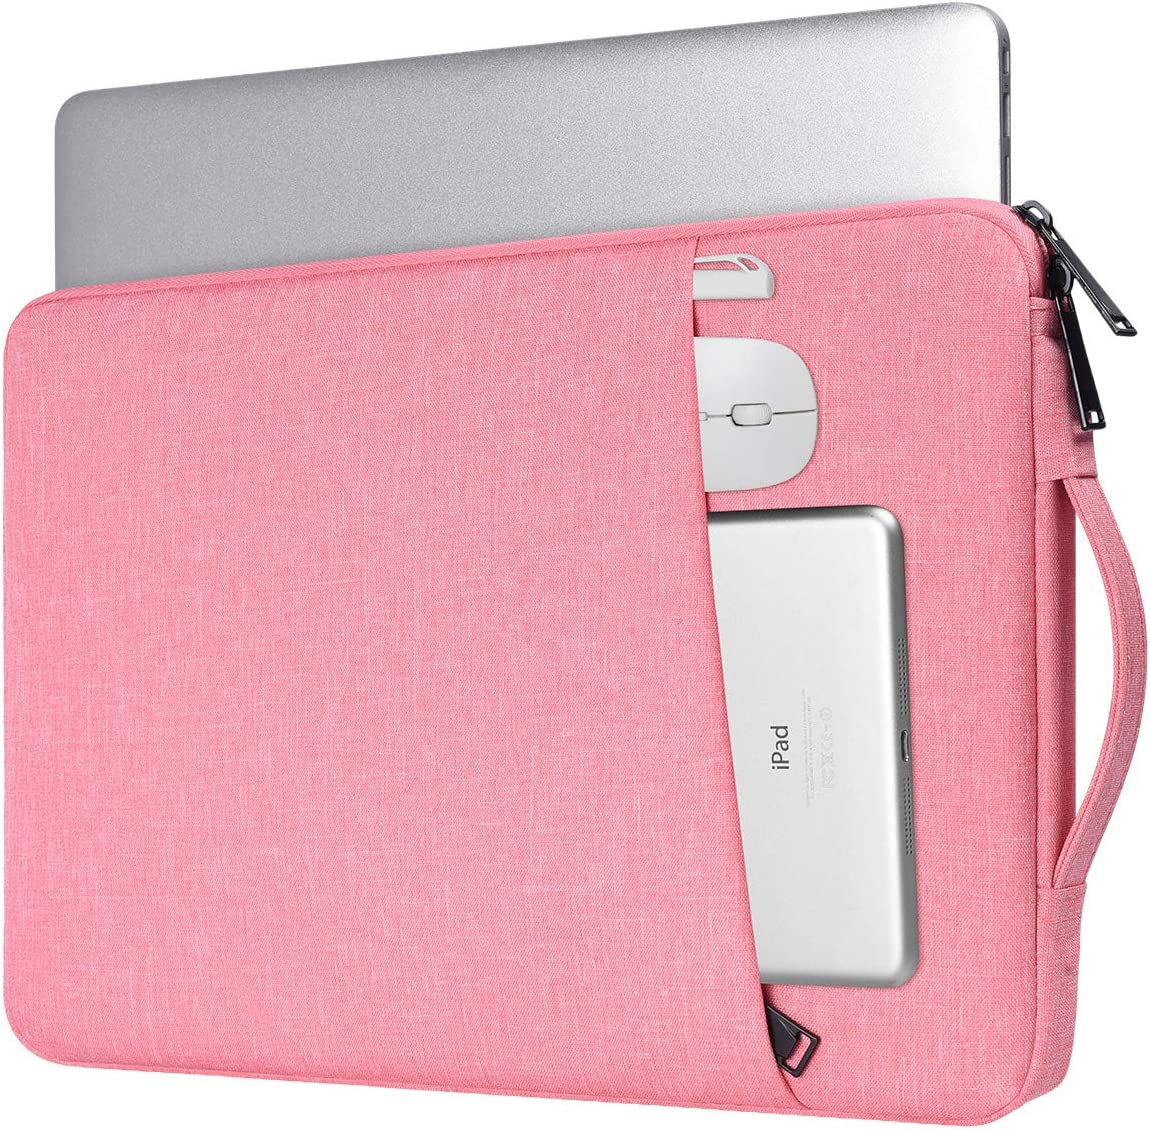 15.6 Inch Laptop Case Bag for Women, Waterproof Notebook Chromebook Sleeve for HP Spectre x360 15.6/HP Envy x360/HP Pro 450/HP OMEN, Lenovo Flex 5/Lenovo Yoga C630, Acer Aspire E15(Pink)